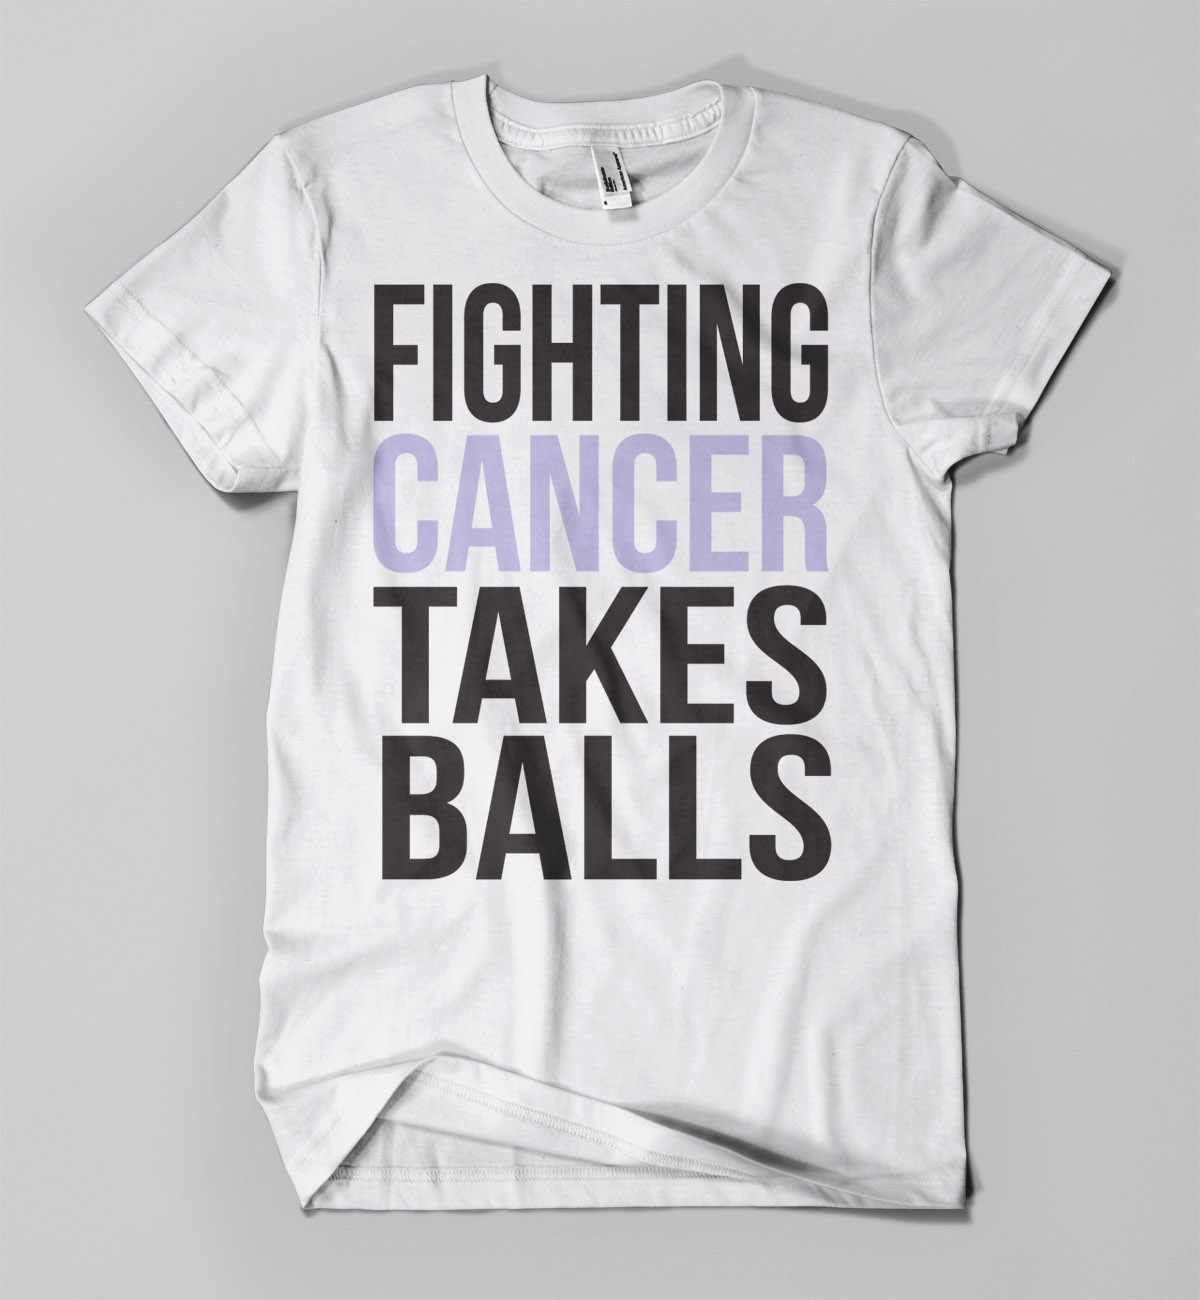 Fighting-cancer-takes-balls-shirt_original